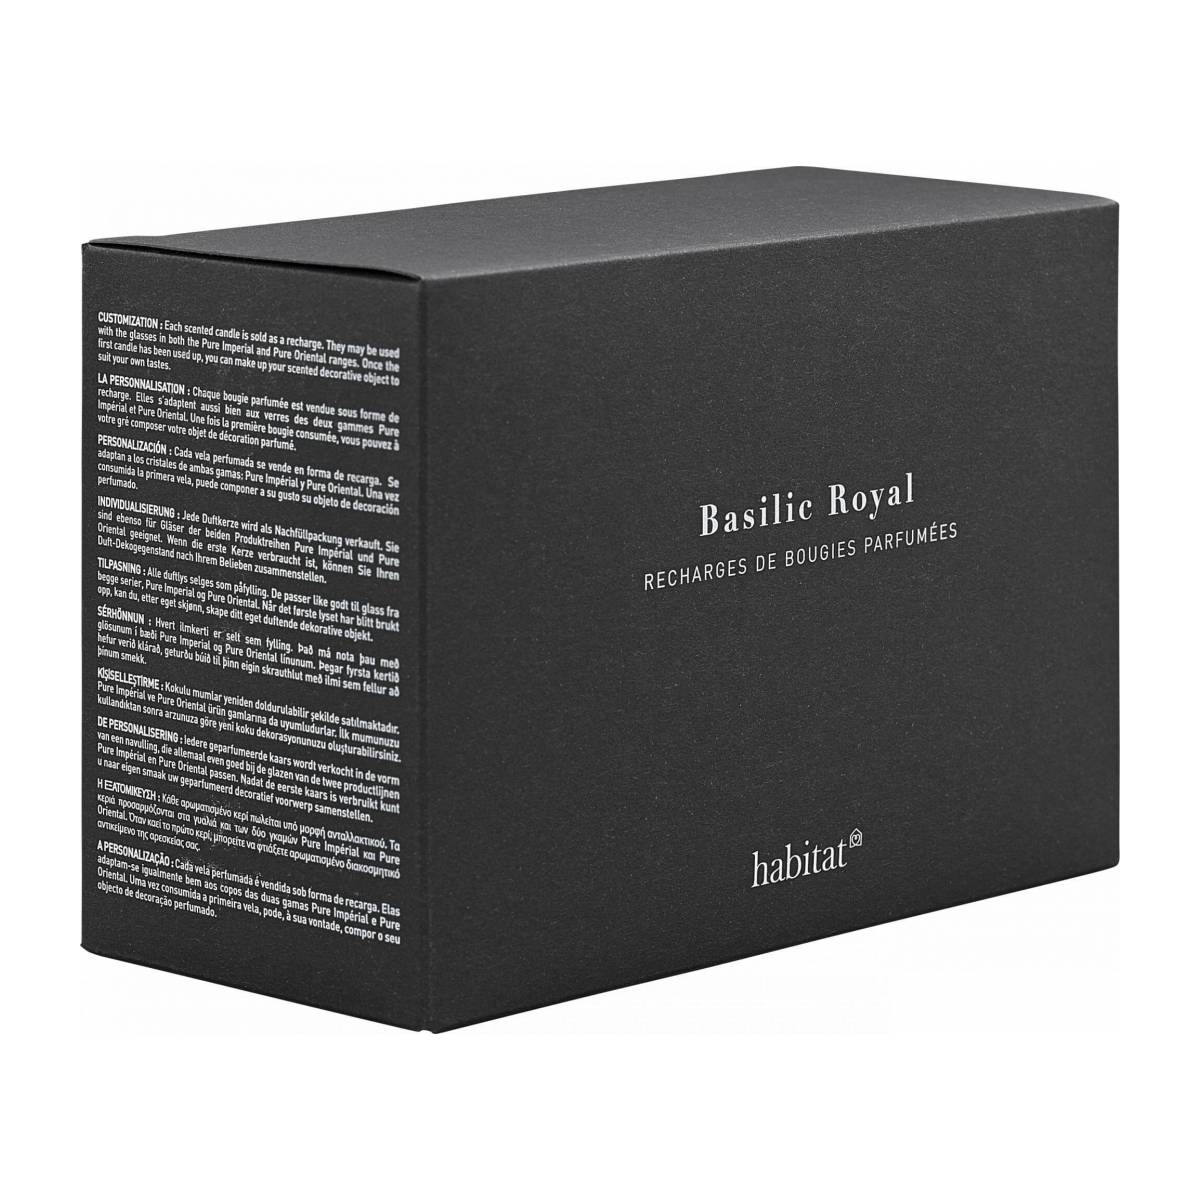 Refill for 2 medium Basil scented candles, 2 x 300 g n°1